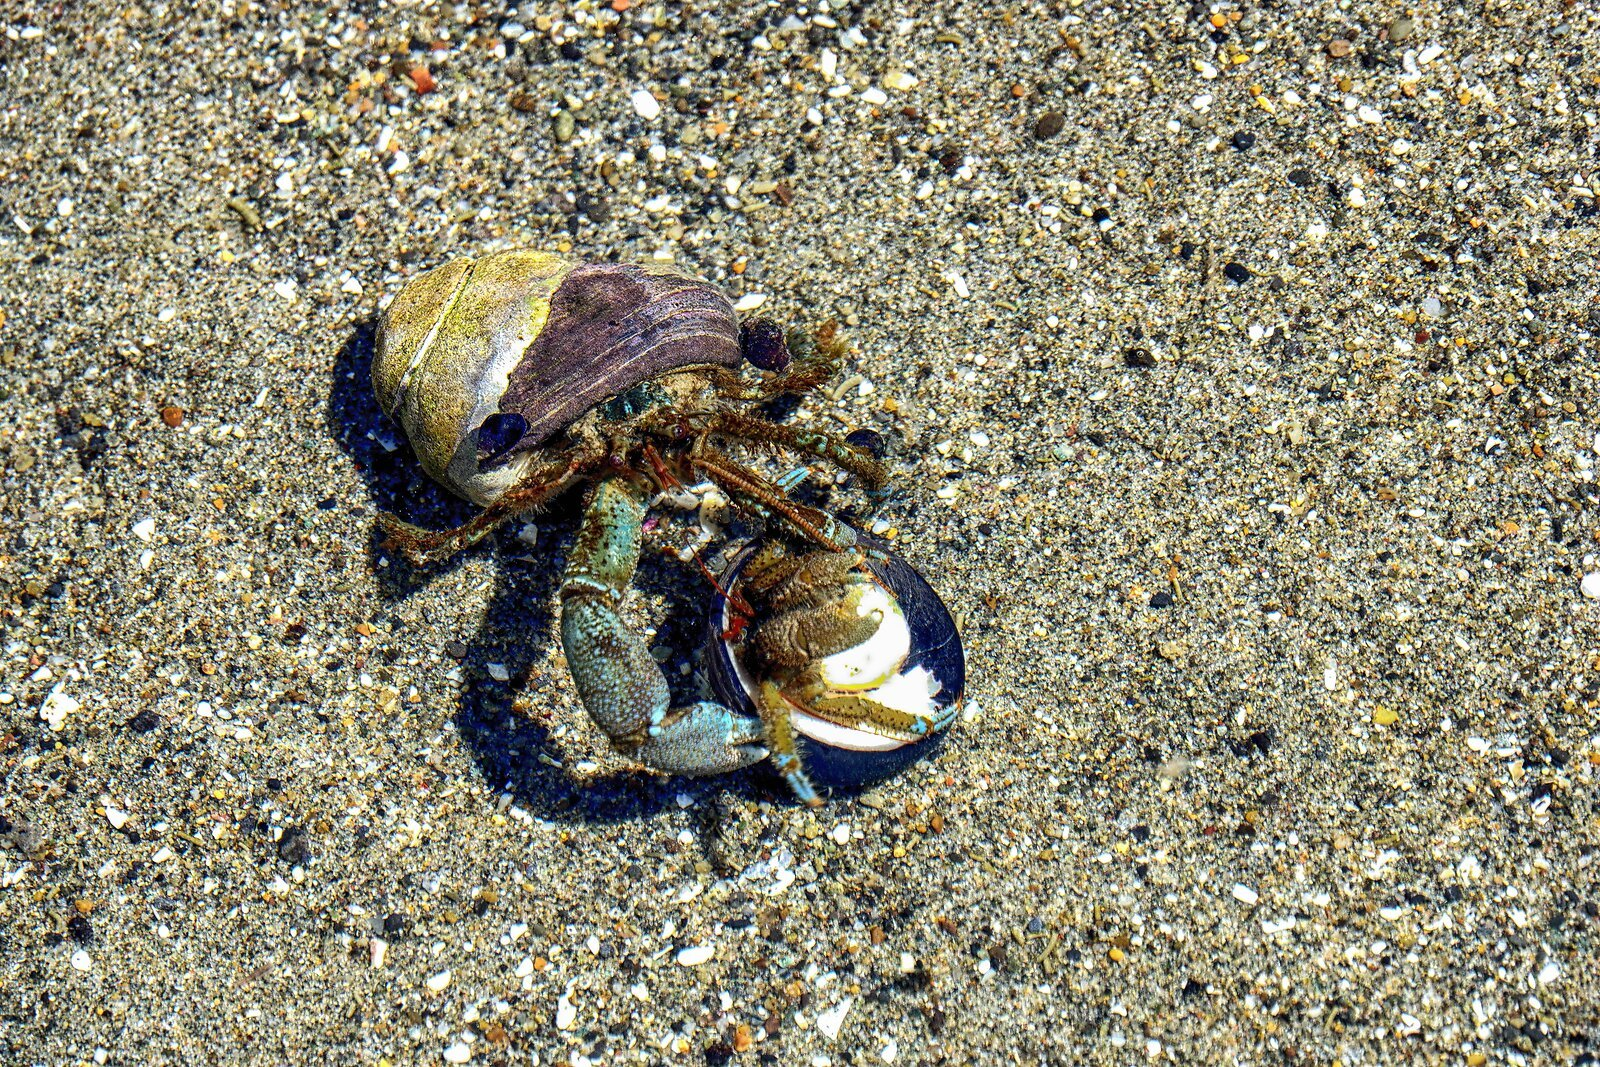 RX10_May18_21_2_hermit_crabs#2.jpg